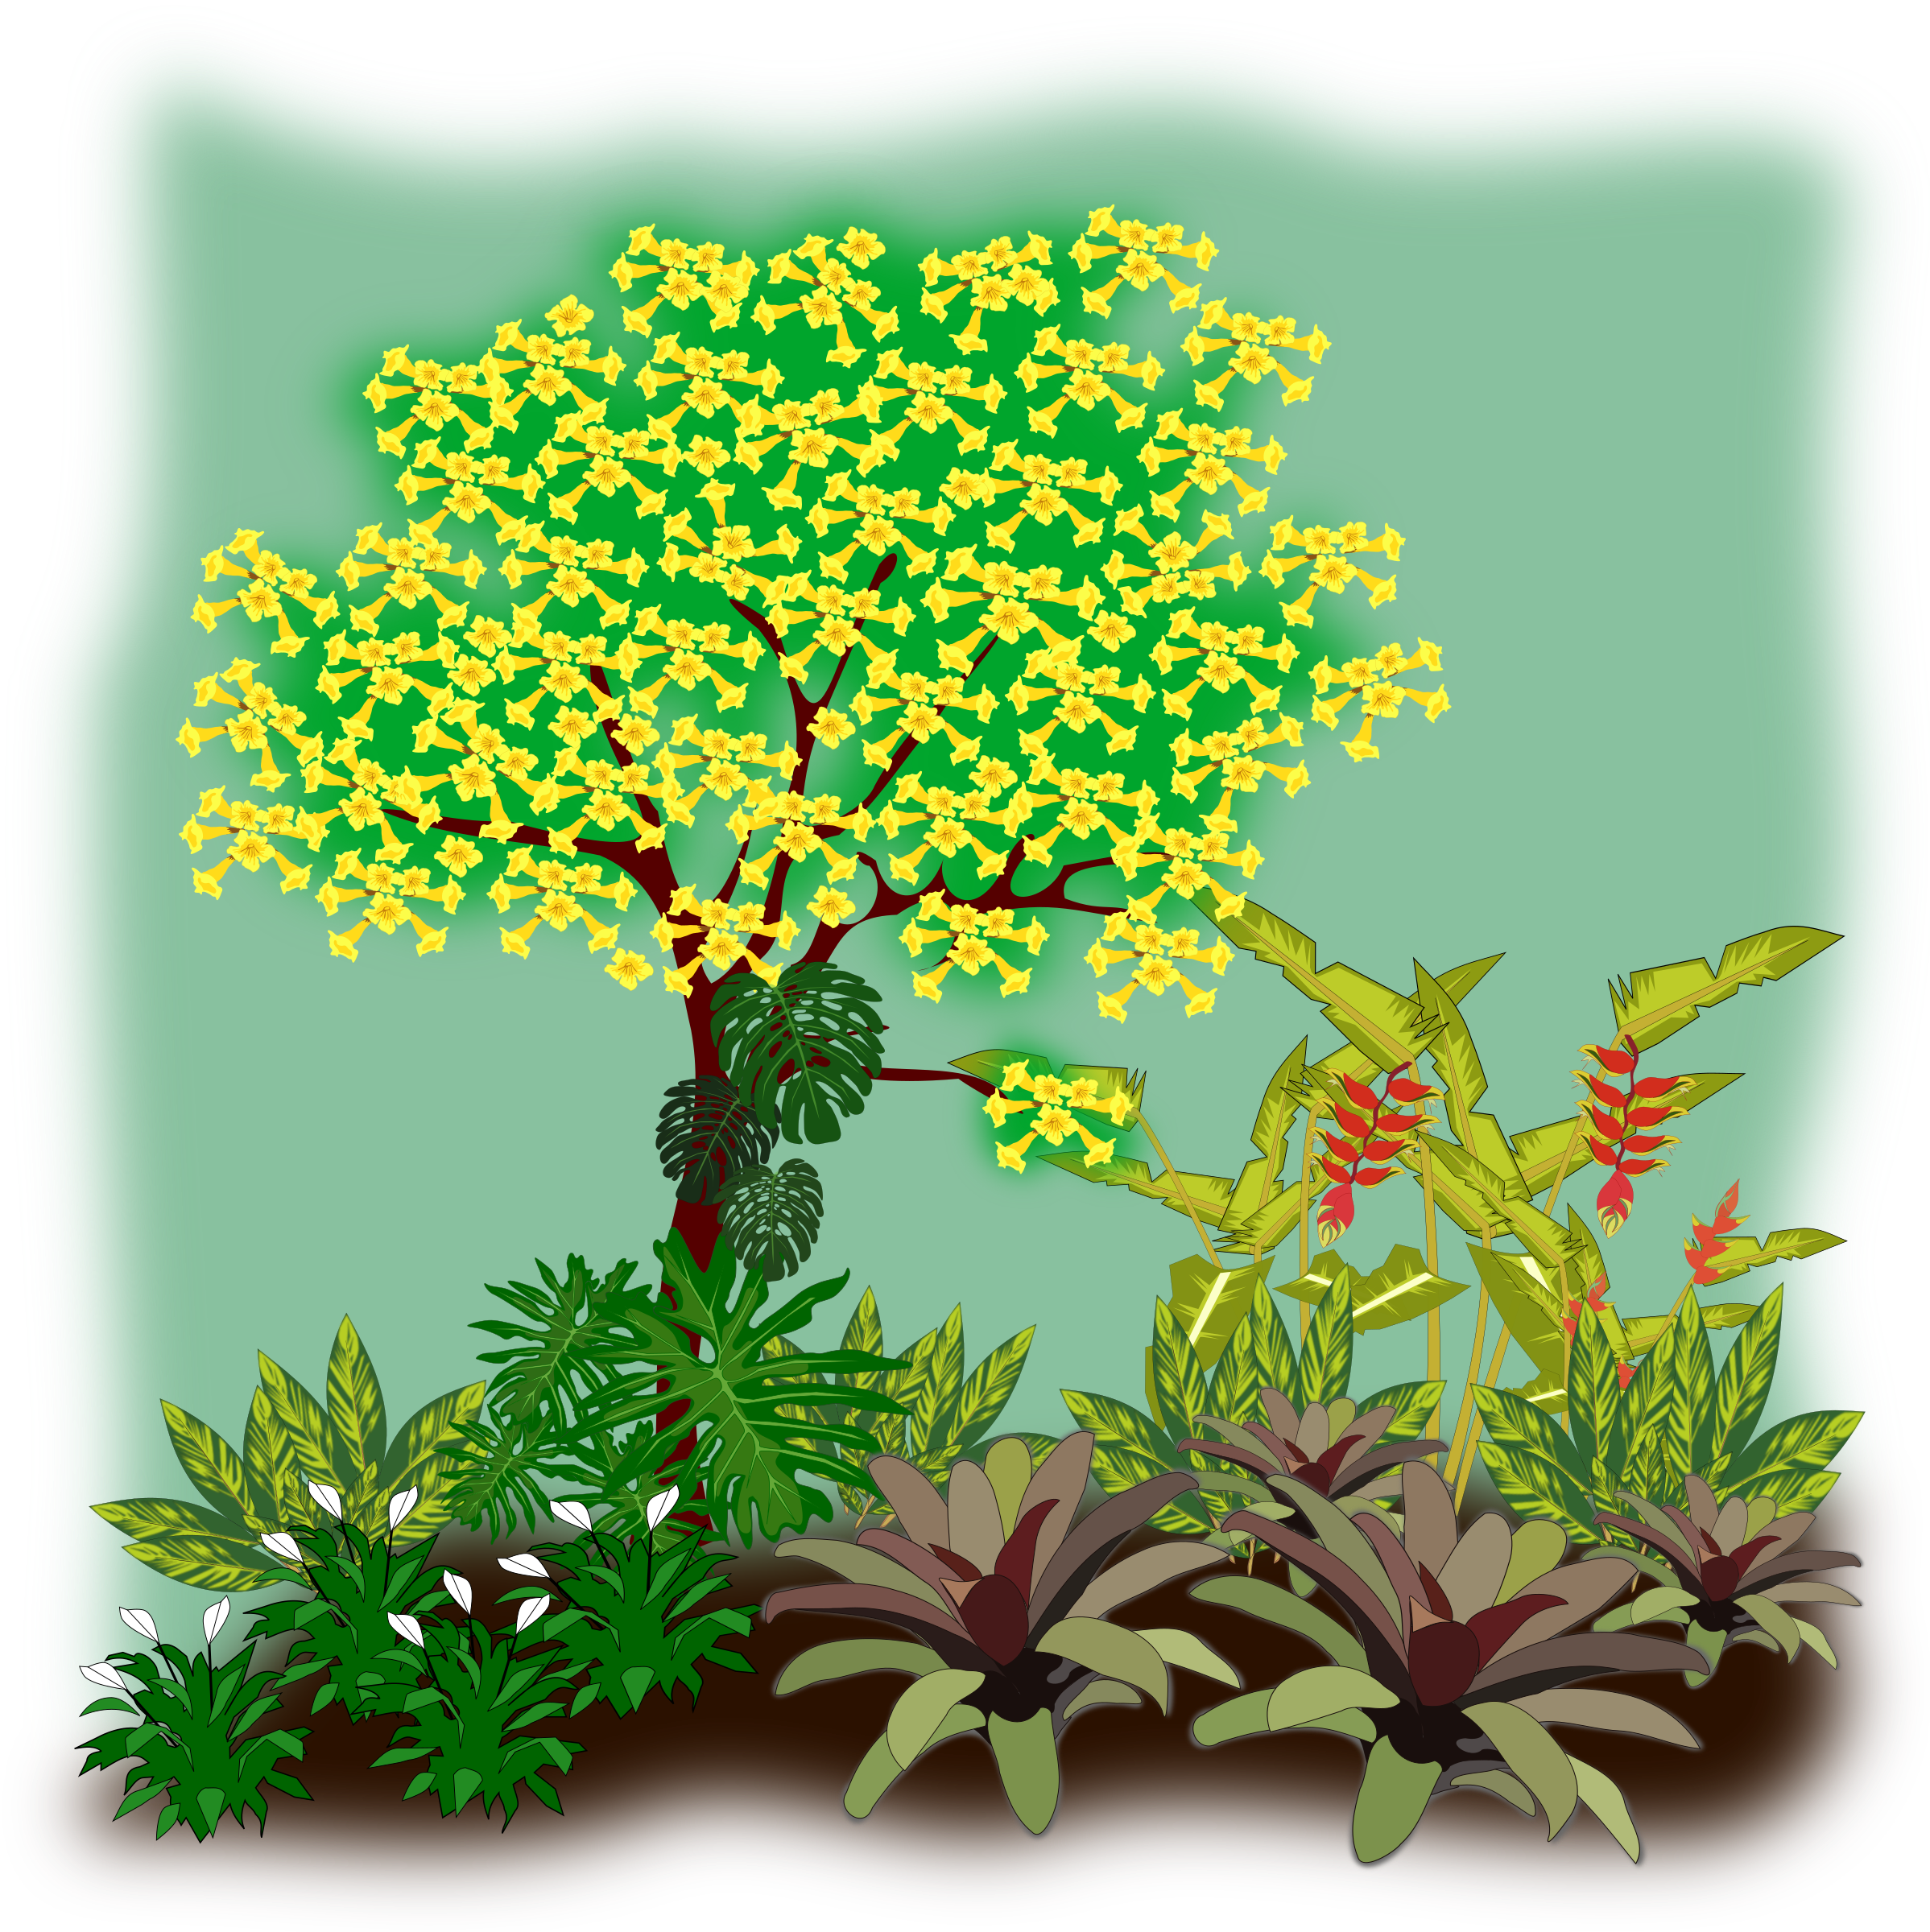 Big image png. Landscaping clipart